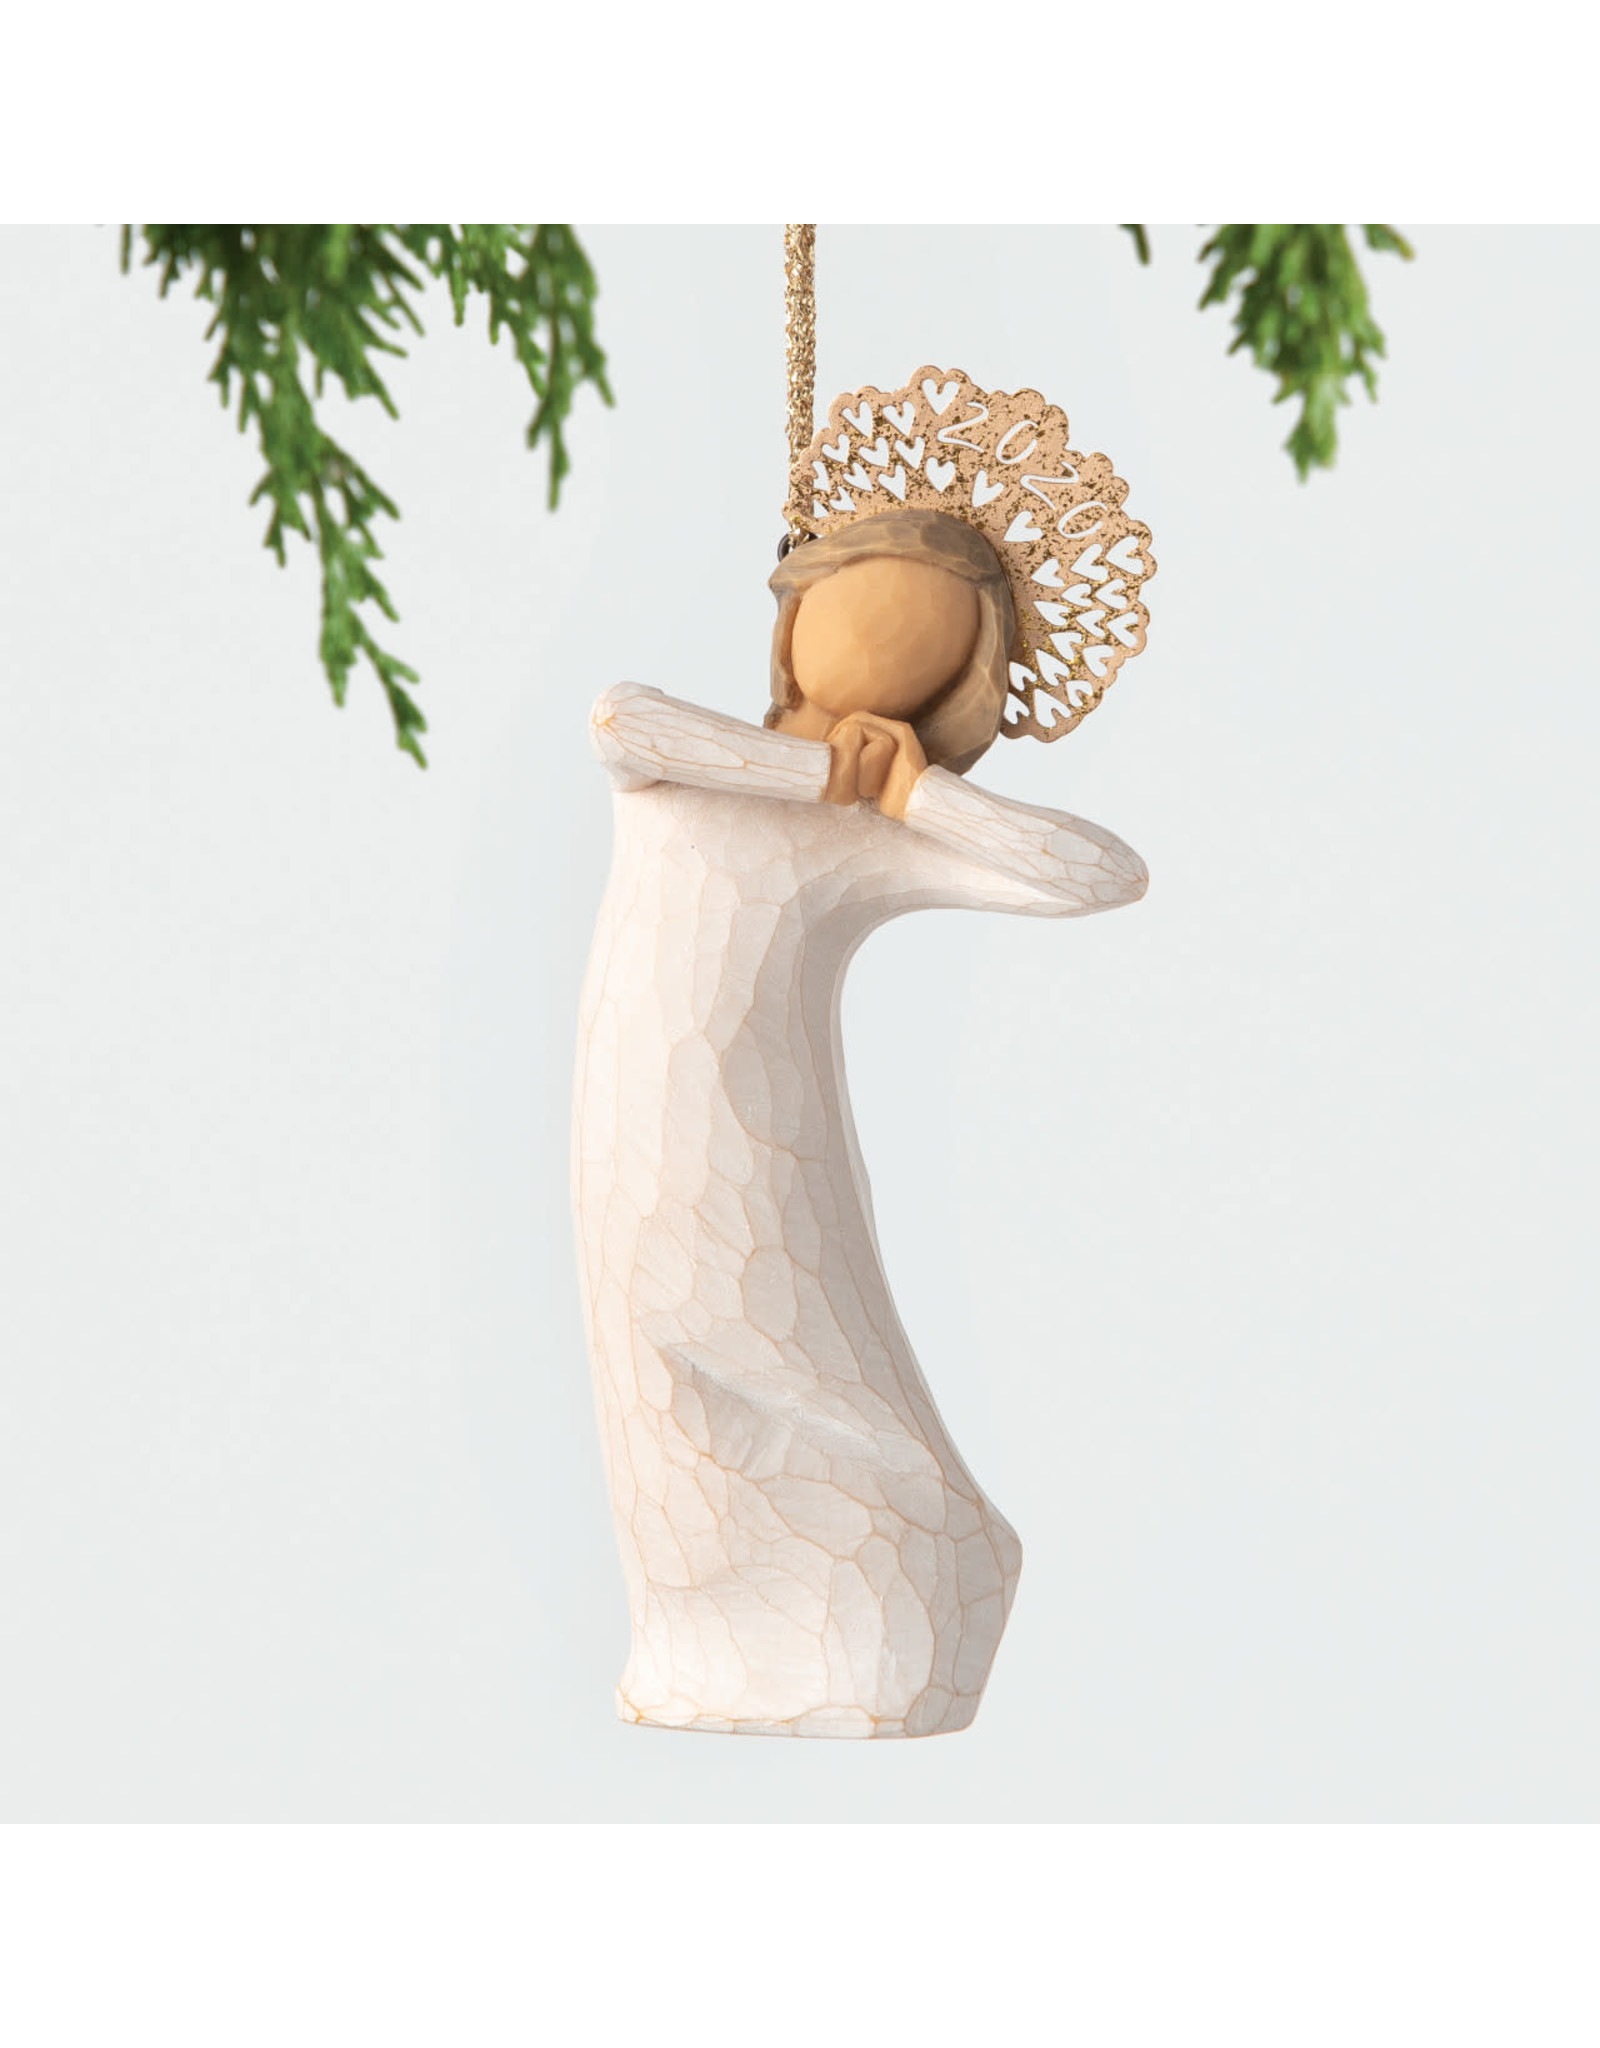 Willow Tree 2020 Crown Ornament